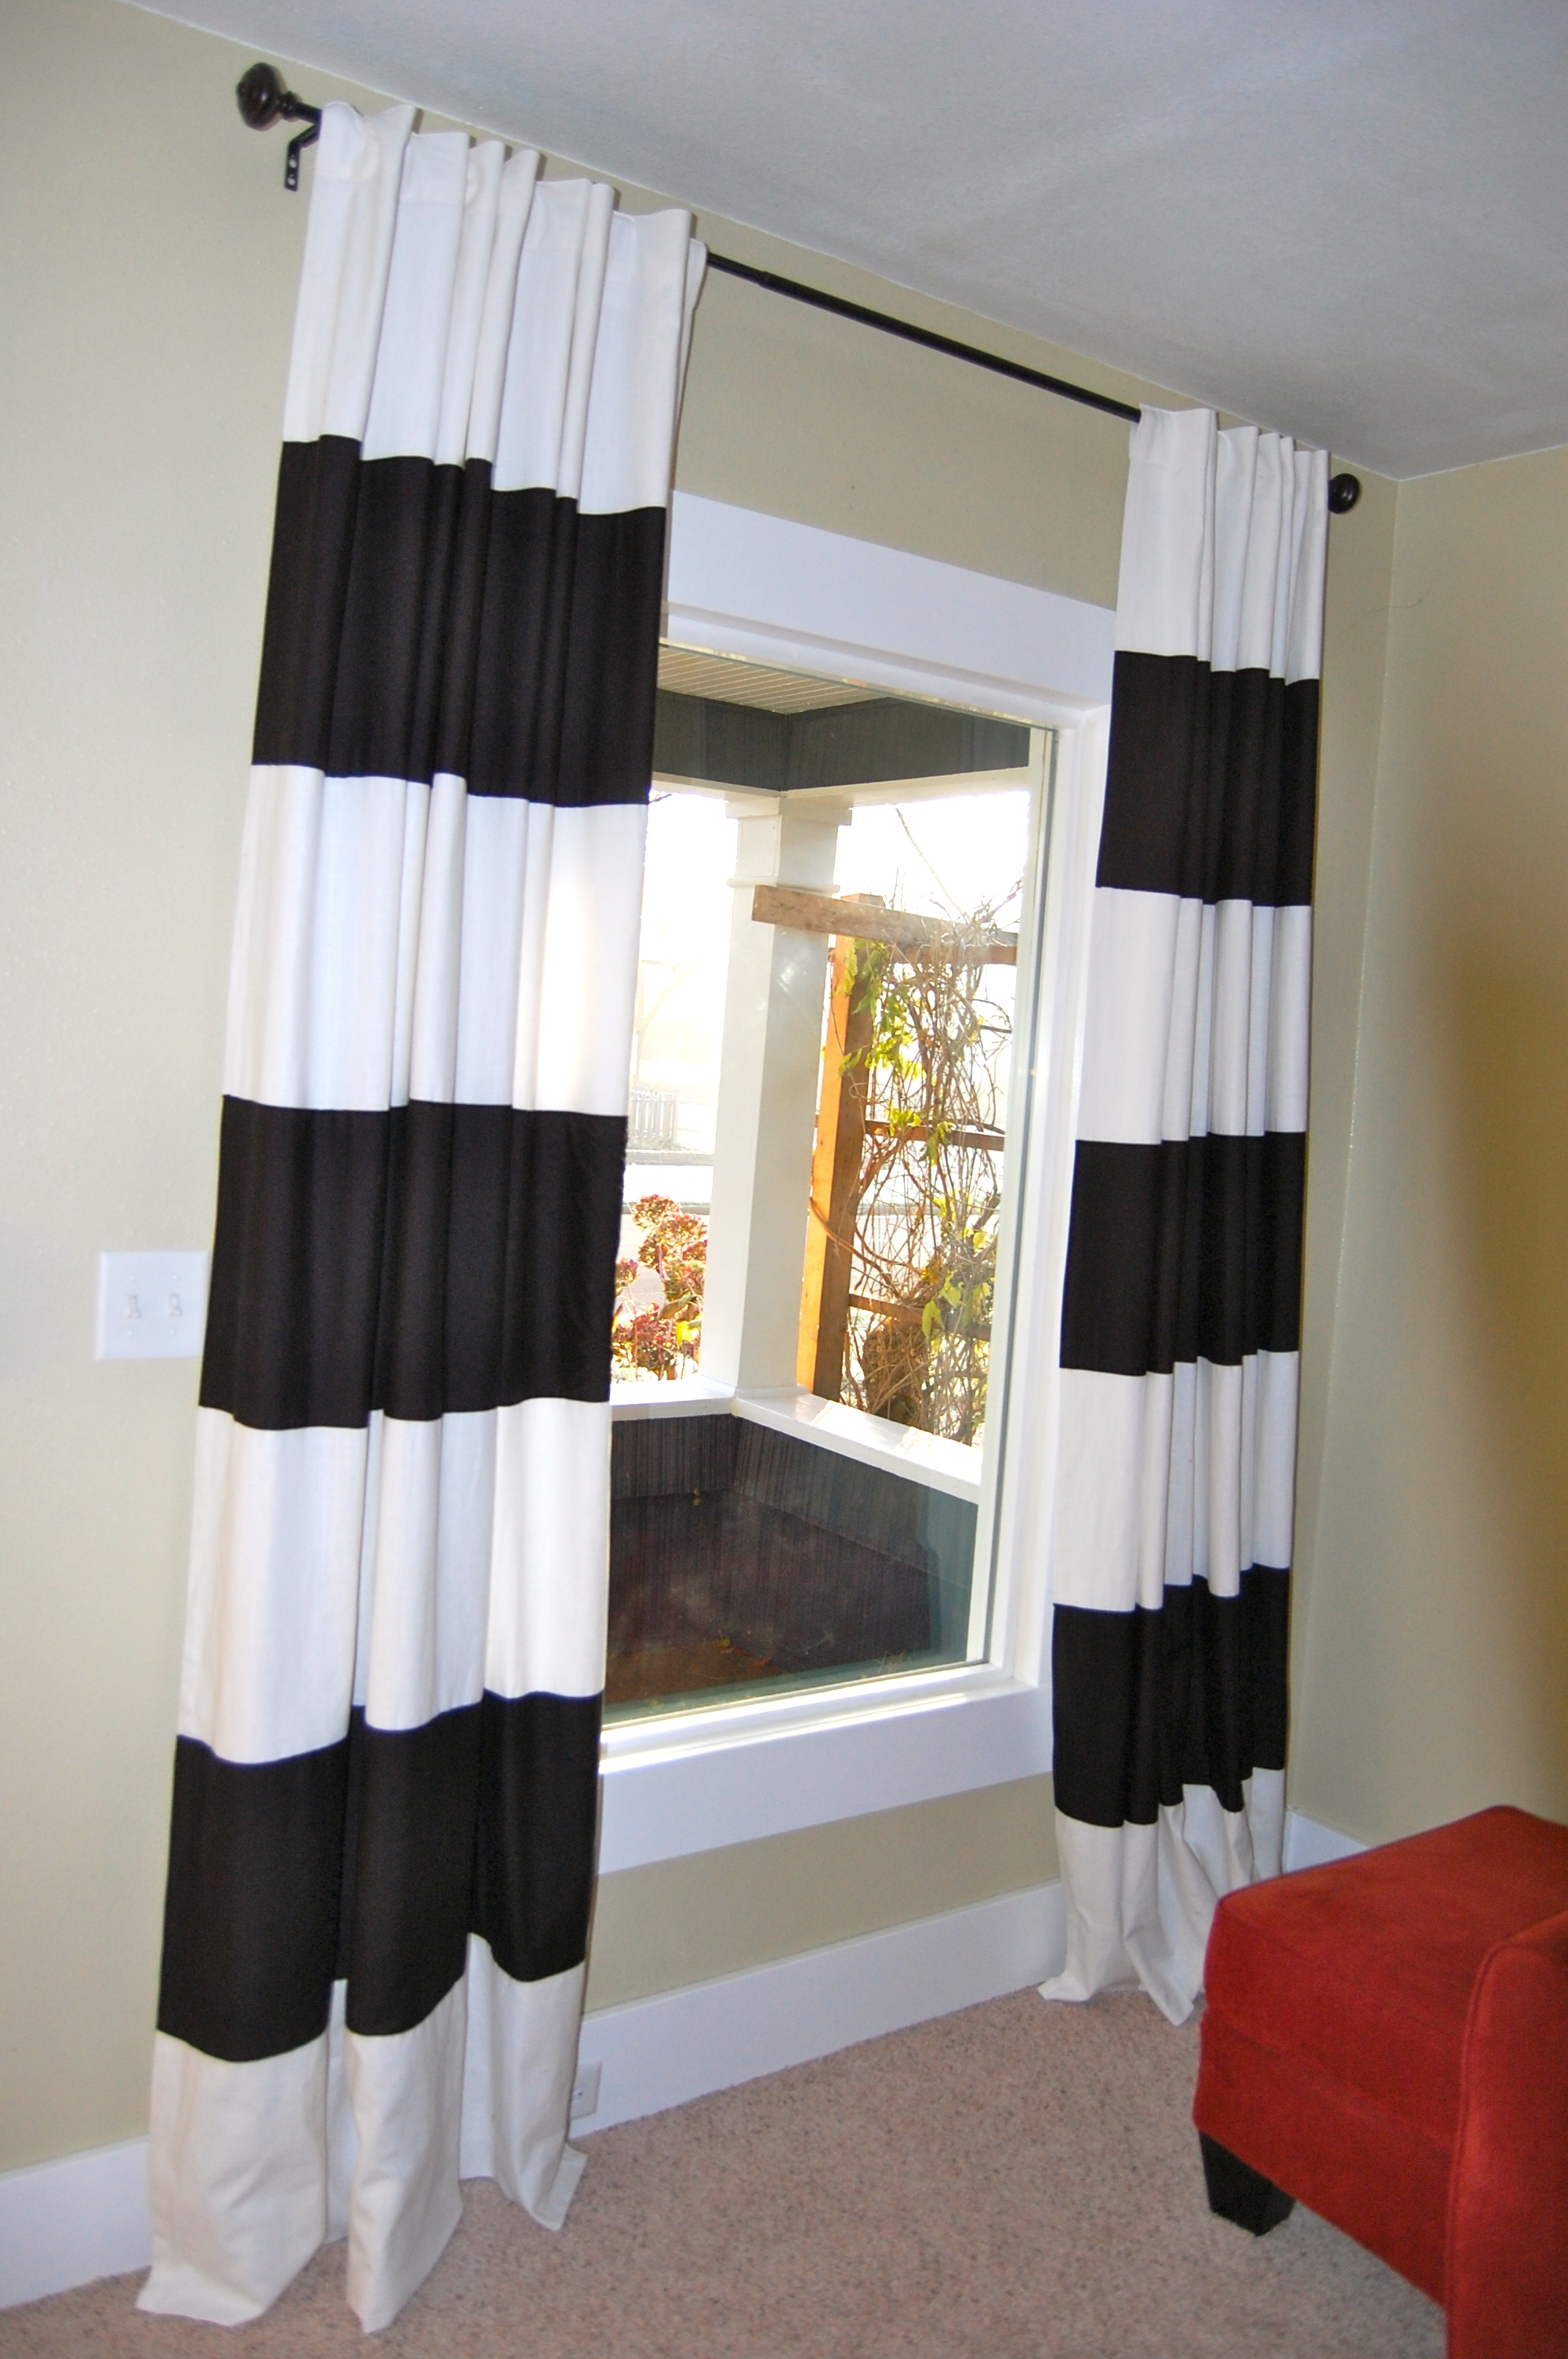 Diy Black White Striped Curtains Diy Project Aholic Within Thick Striped Curtains (View 1 of 15)